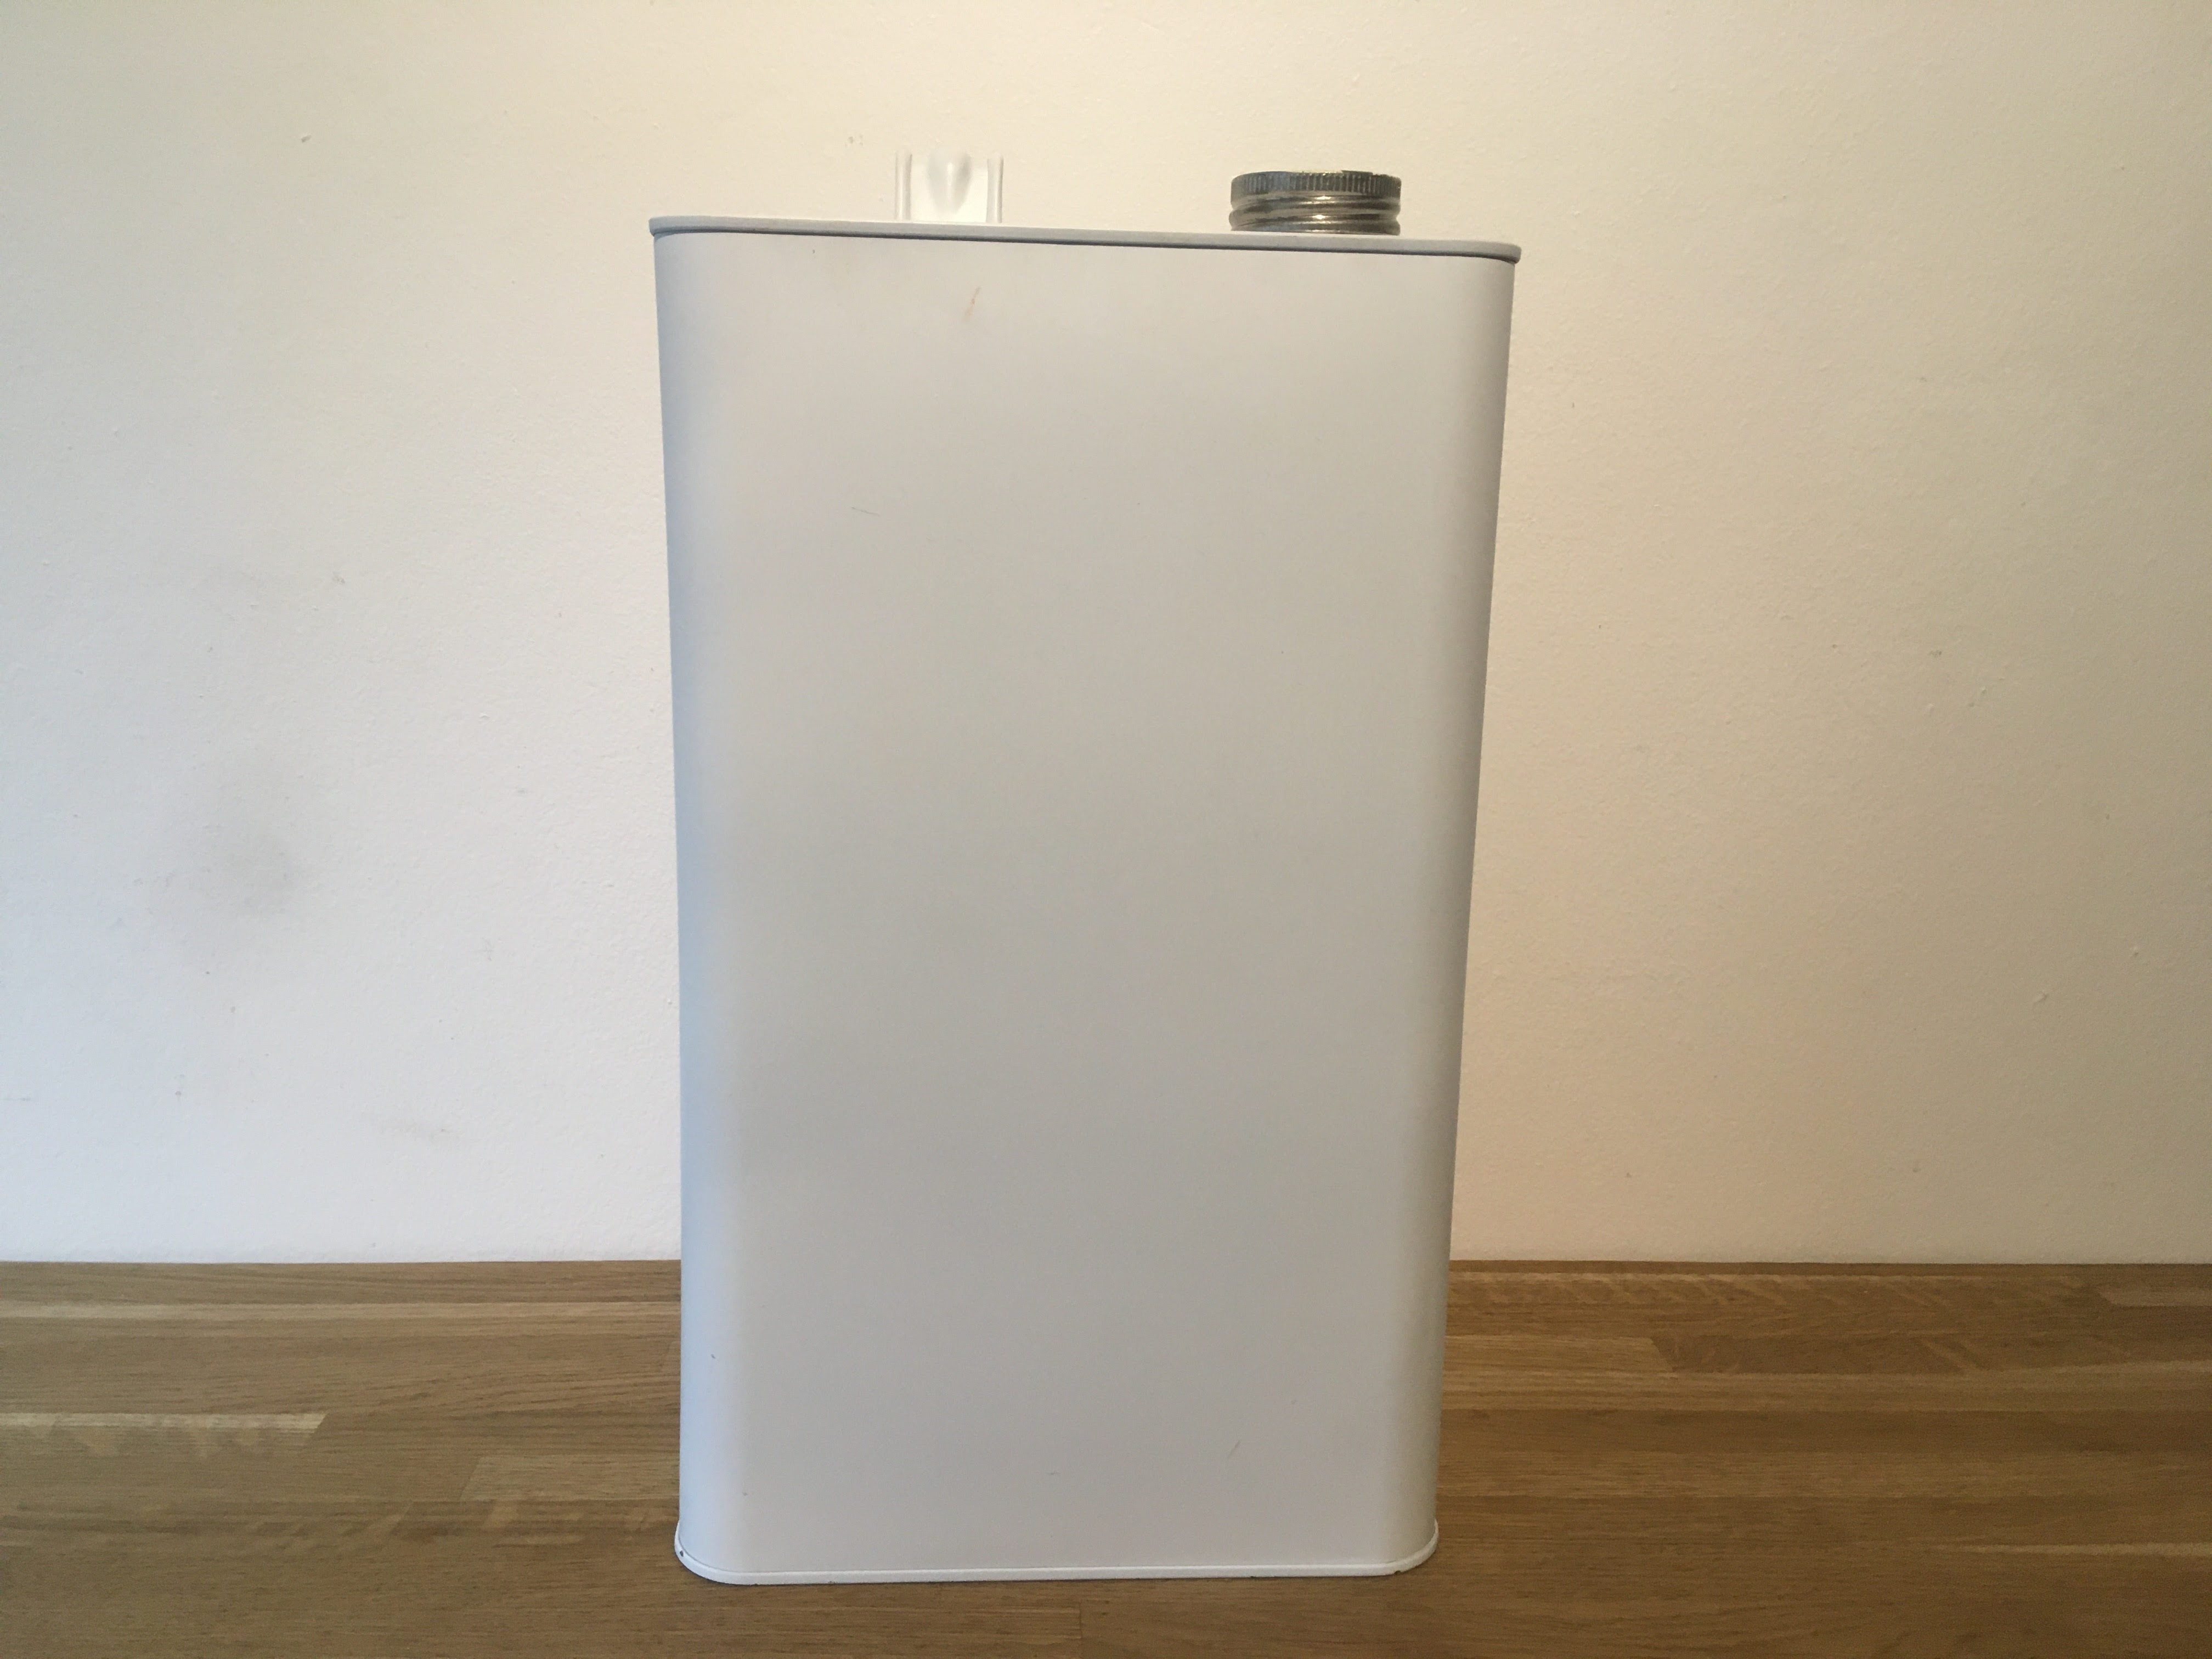 Mobligas Oil Petrol Can - Image 5 of 7